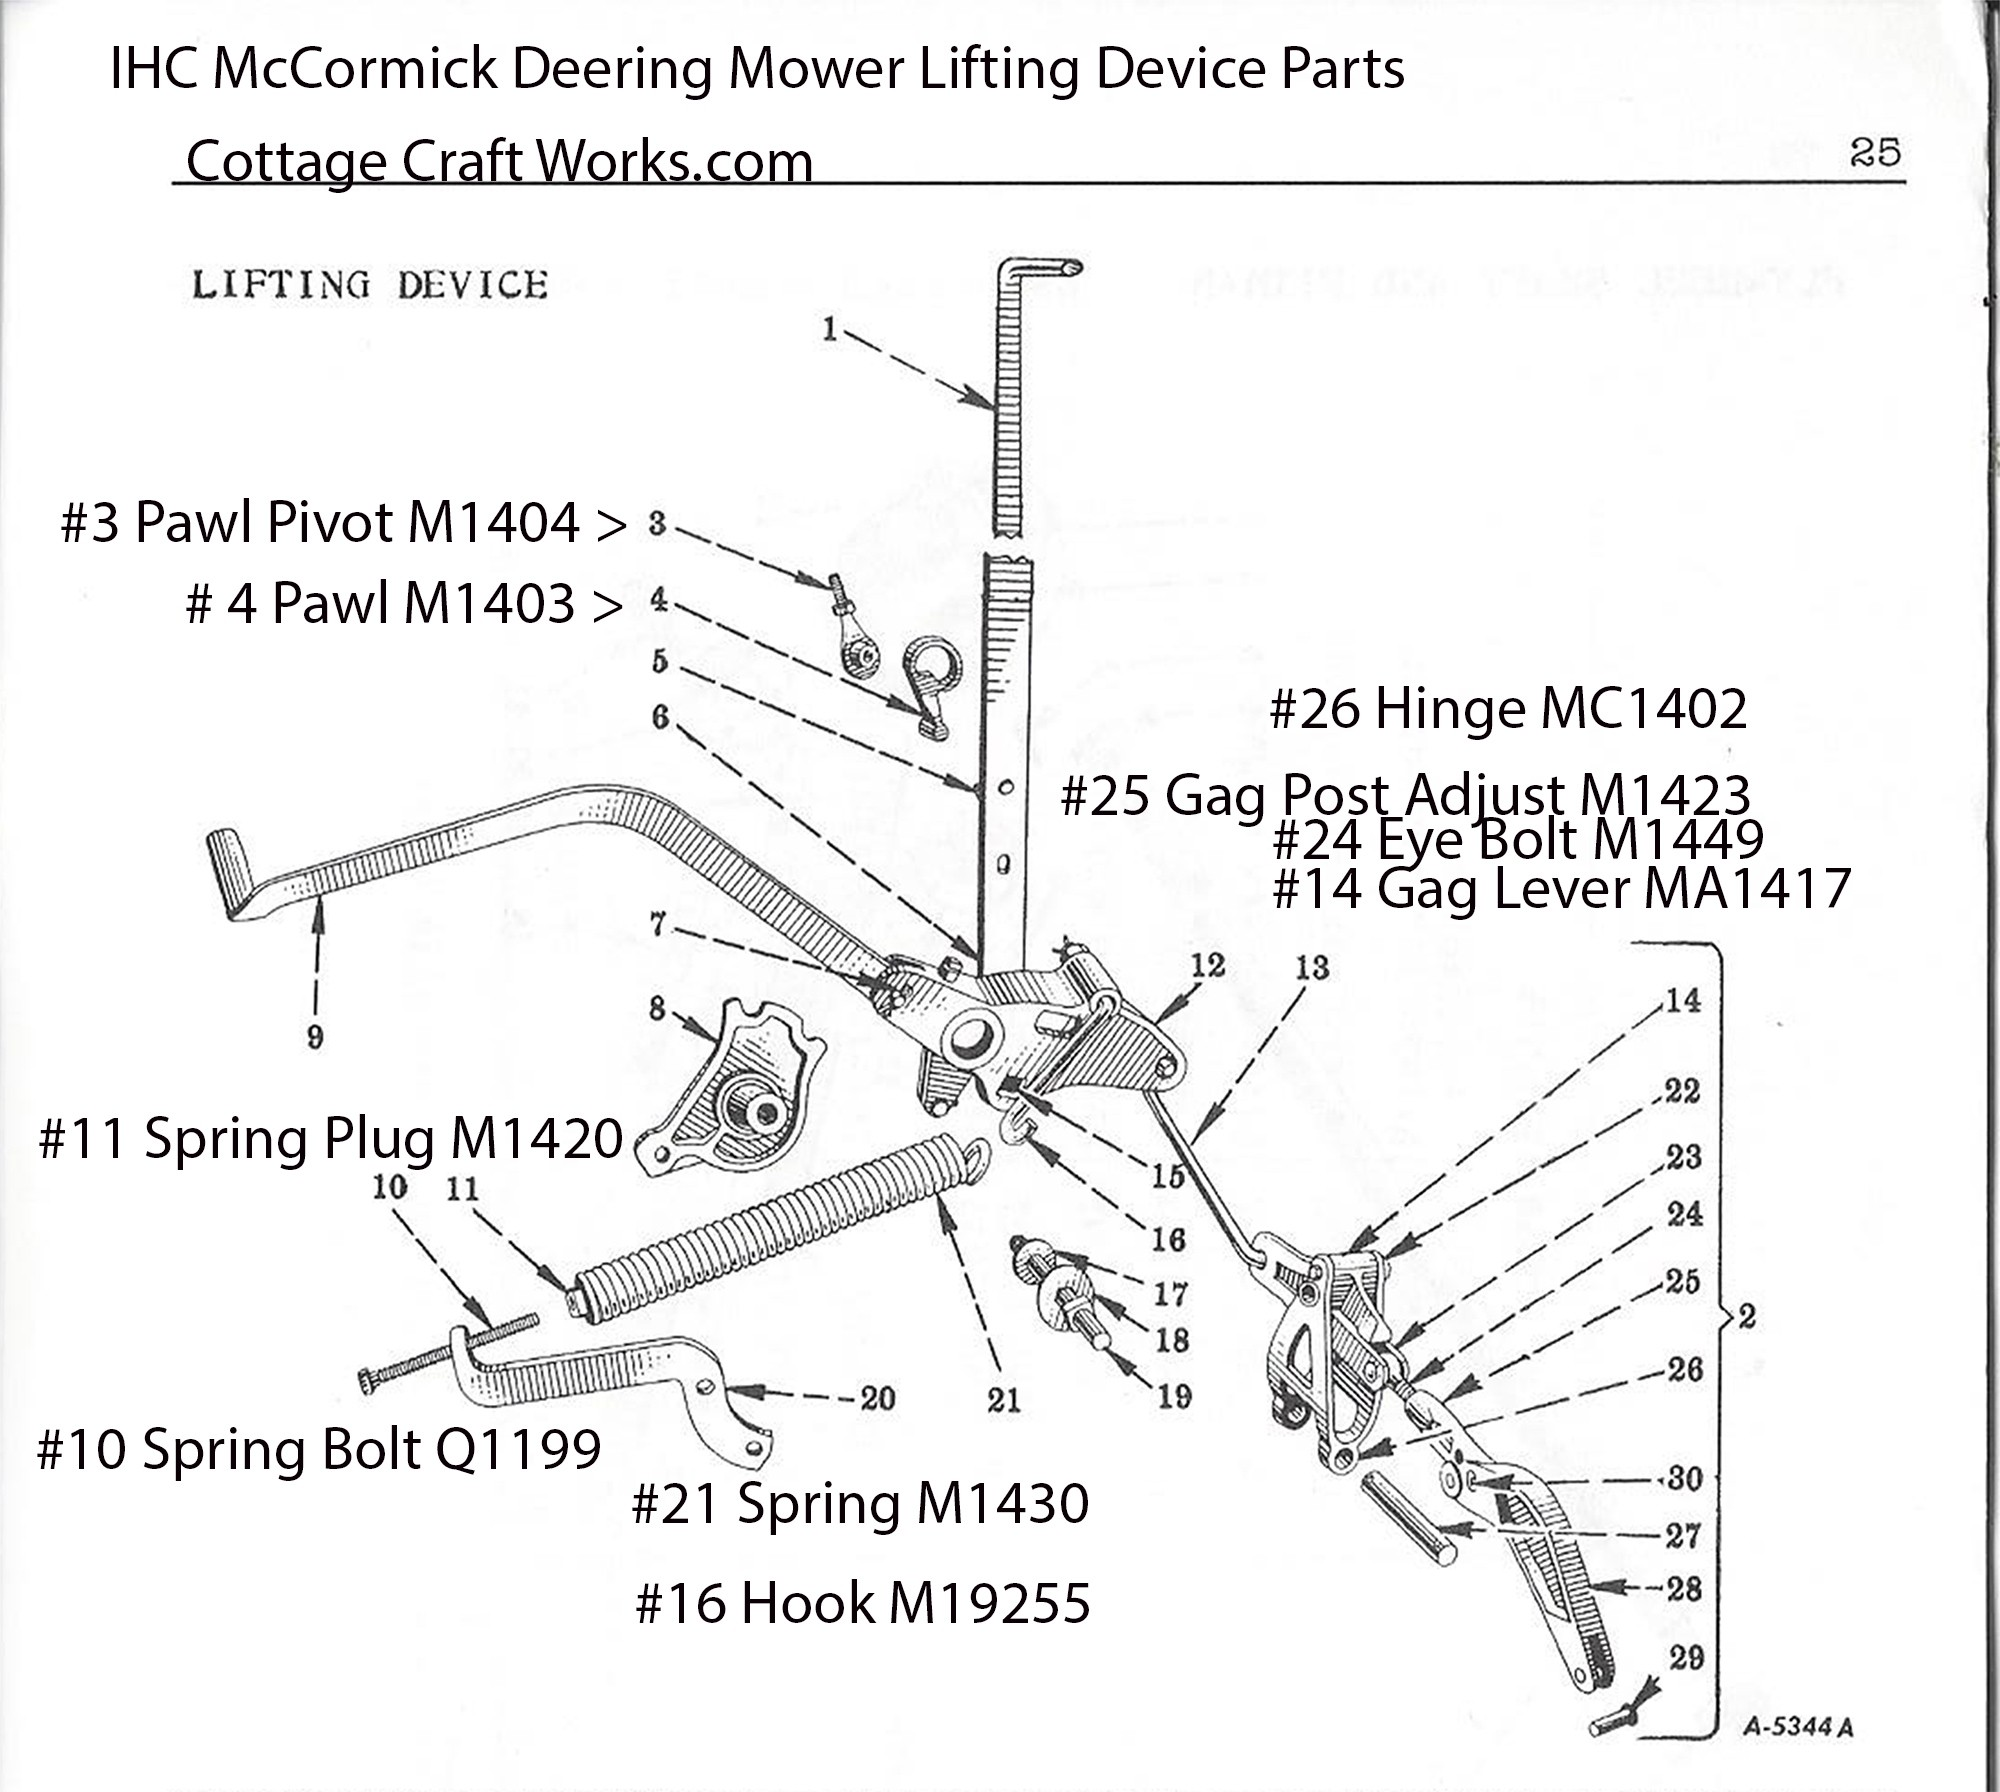 Ihc Mccormick Deering Mower Lifting Device Parts